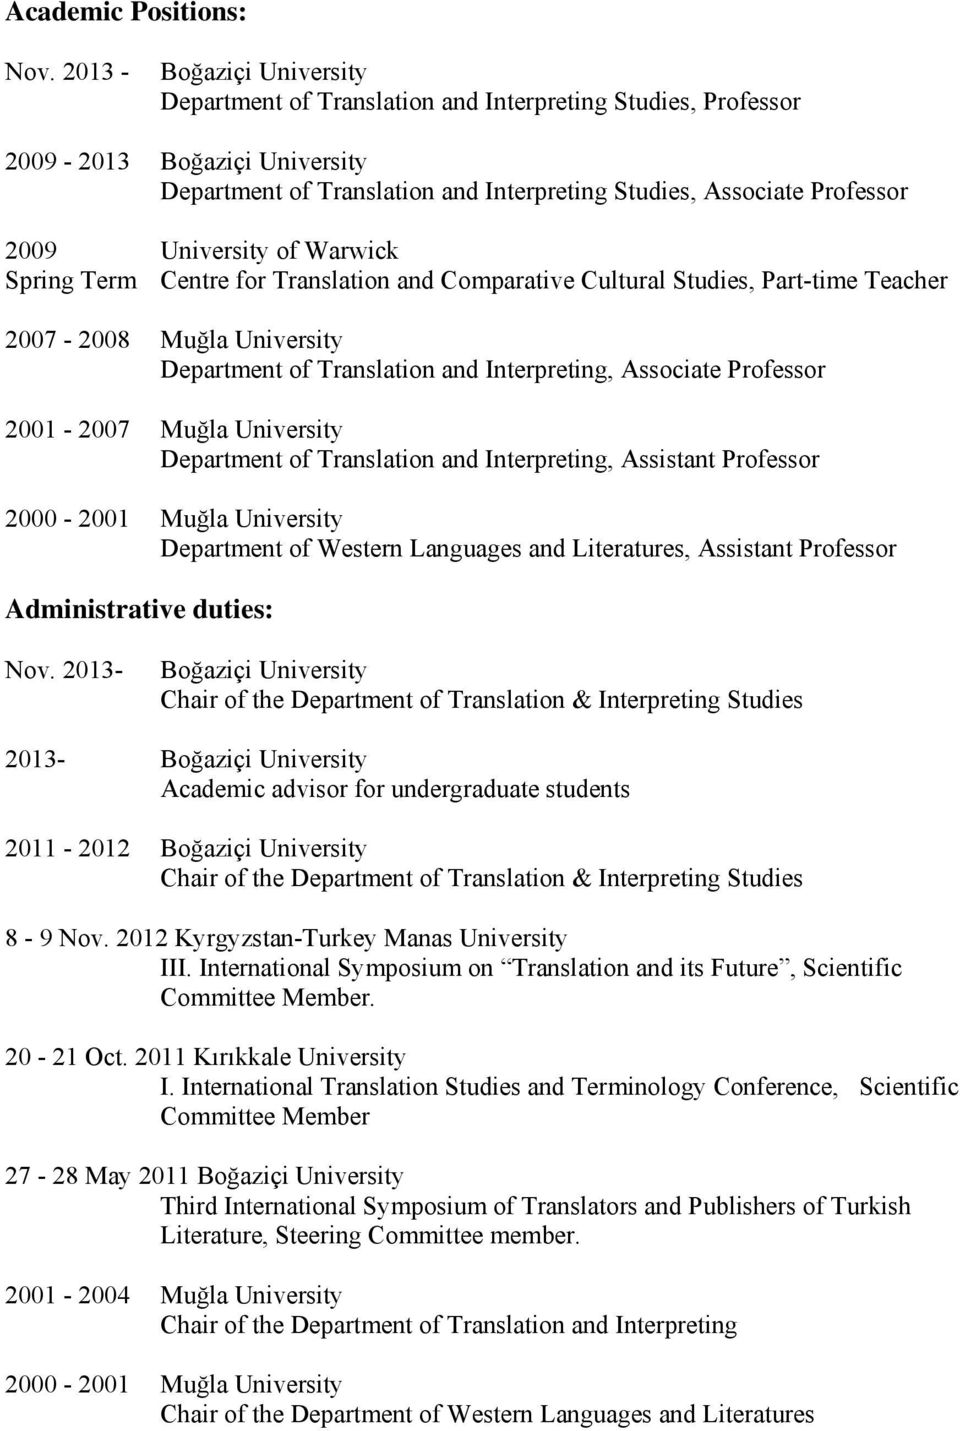 University of Warwick Spring Term Centre for Translation and Comparative Cultural Studies, Part-time Teacher 2007-2008 Muğla University Department of Translation and Interpreting, Associate Professor